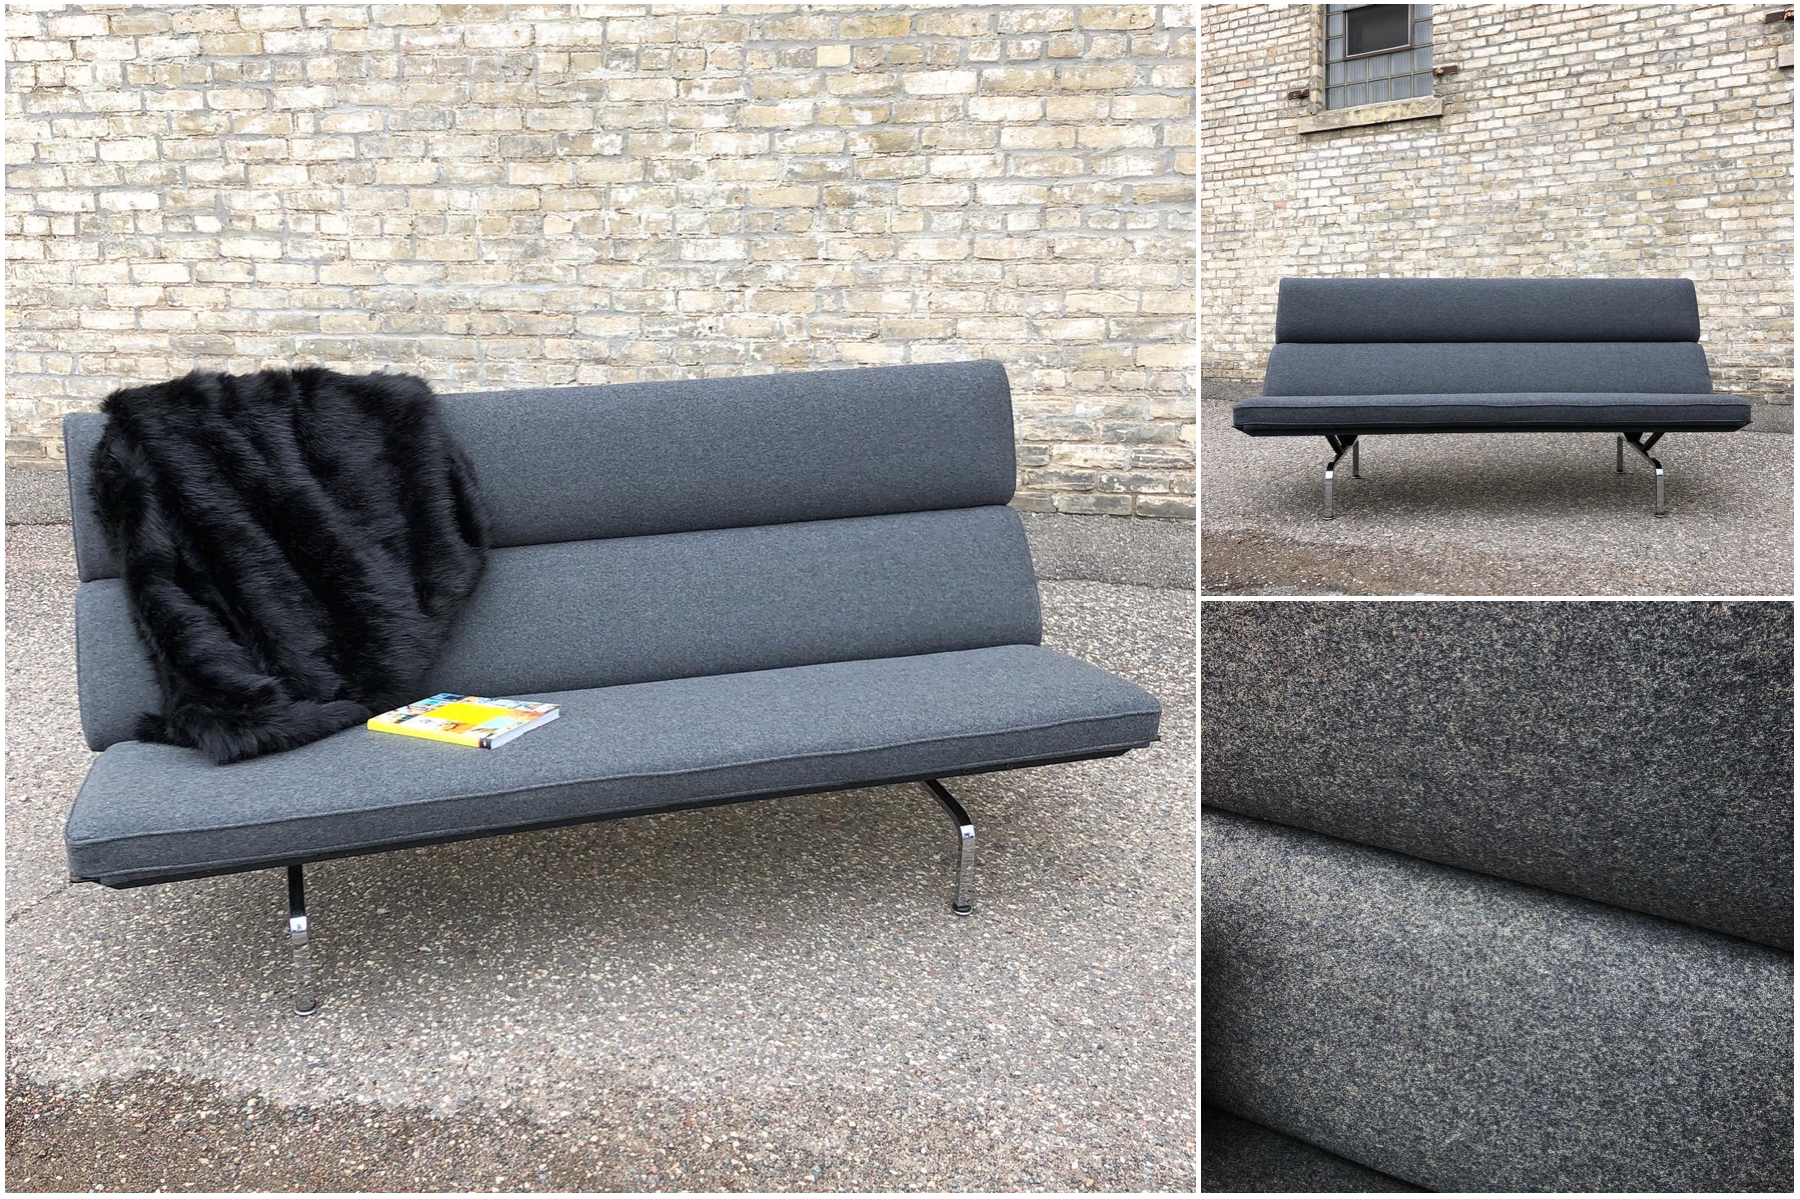 Eames Compact Sofa - reupholstered in wool